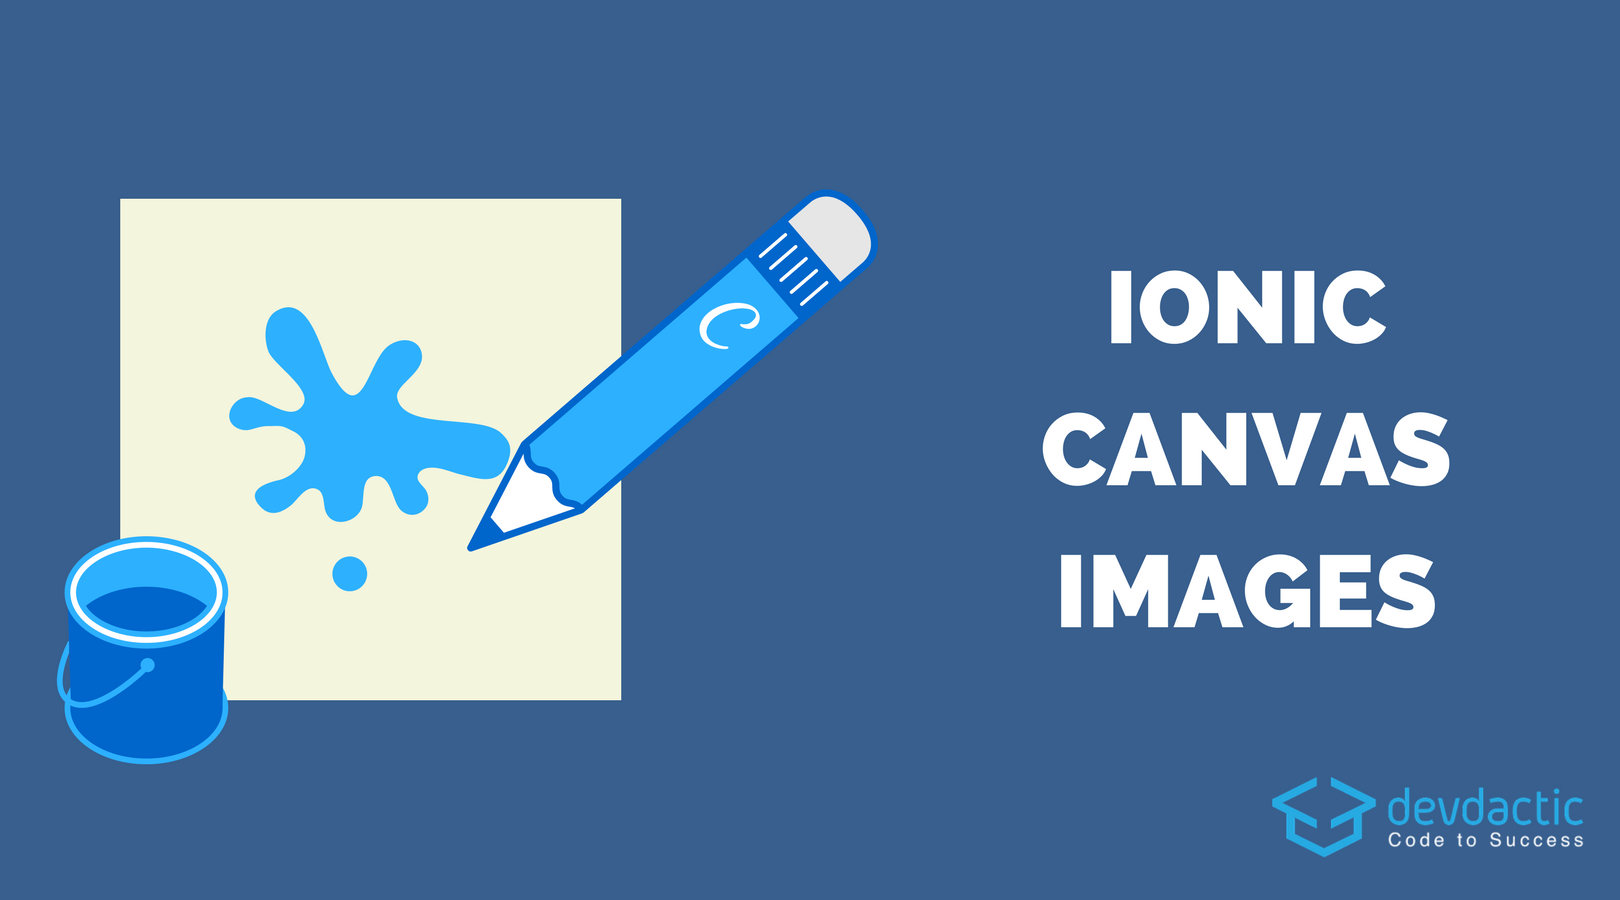 Ionic Canvas Drawing and Saving Images as Files - Devdactic